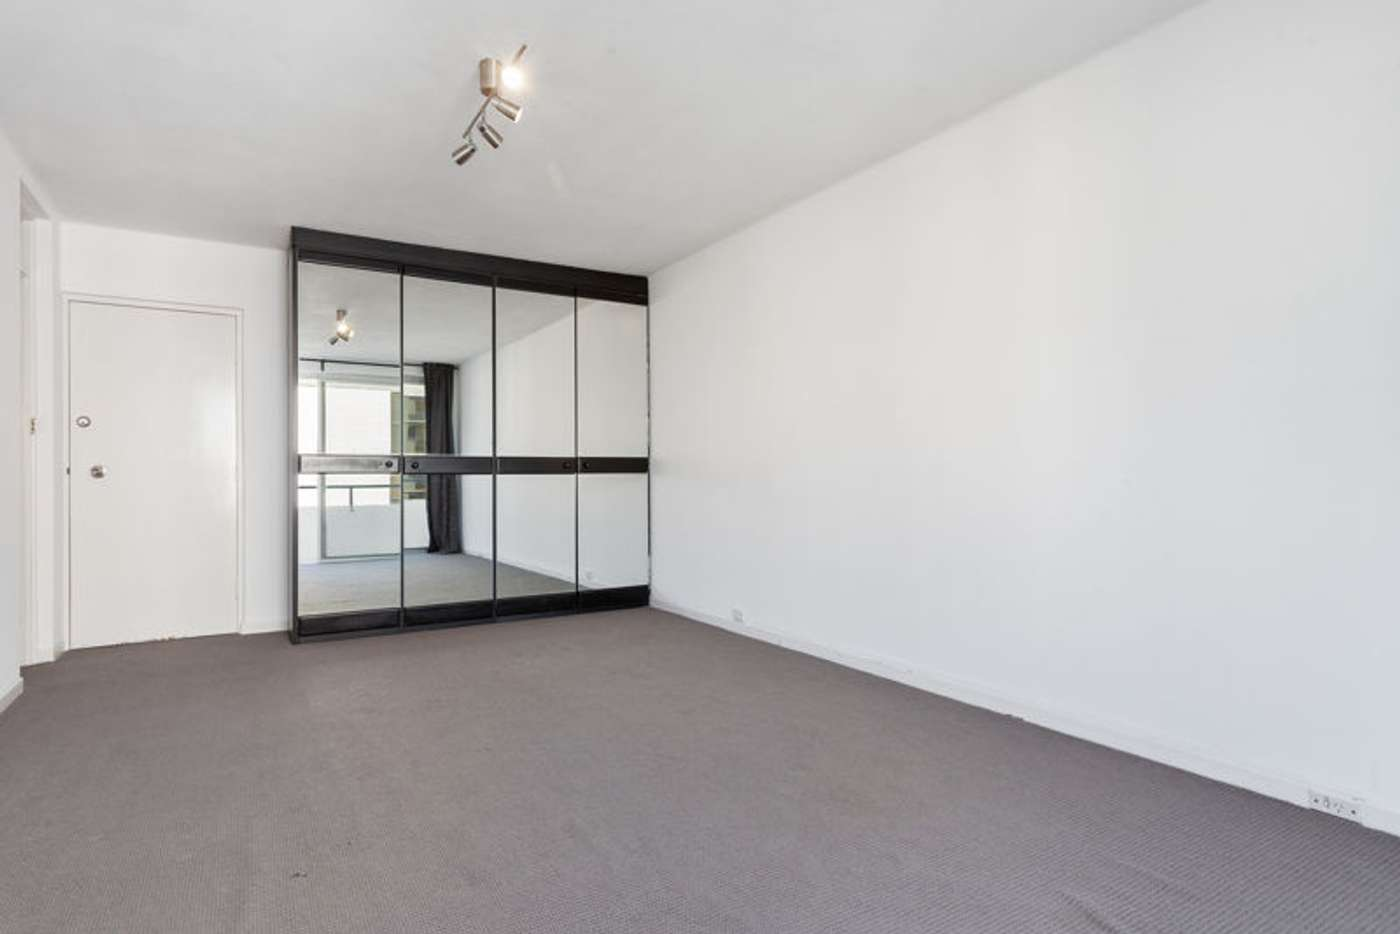 Sixth view of Homely apartment listing, 63/154 Mill Point Road, South Perth WA 6151